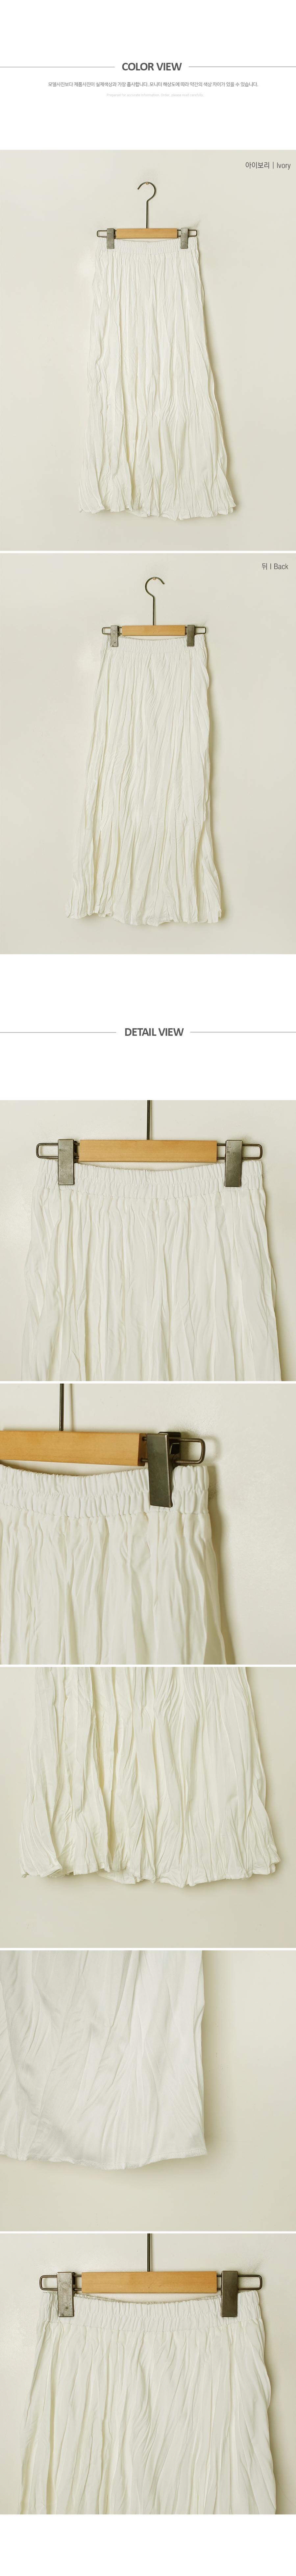 Comfortable, pretty and natural pleated skirt